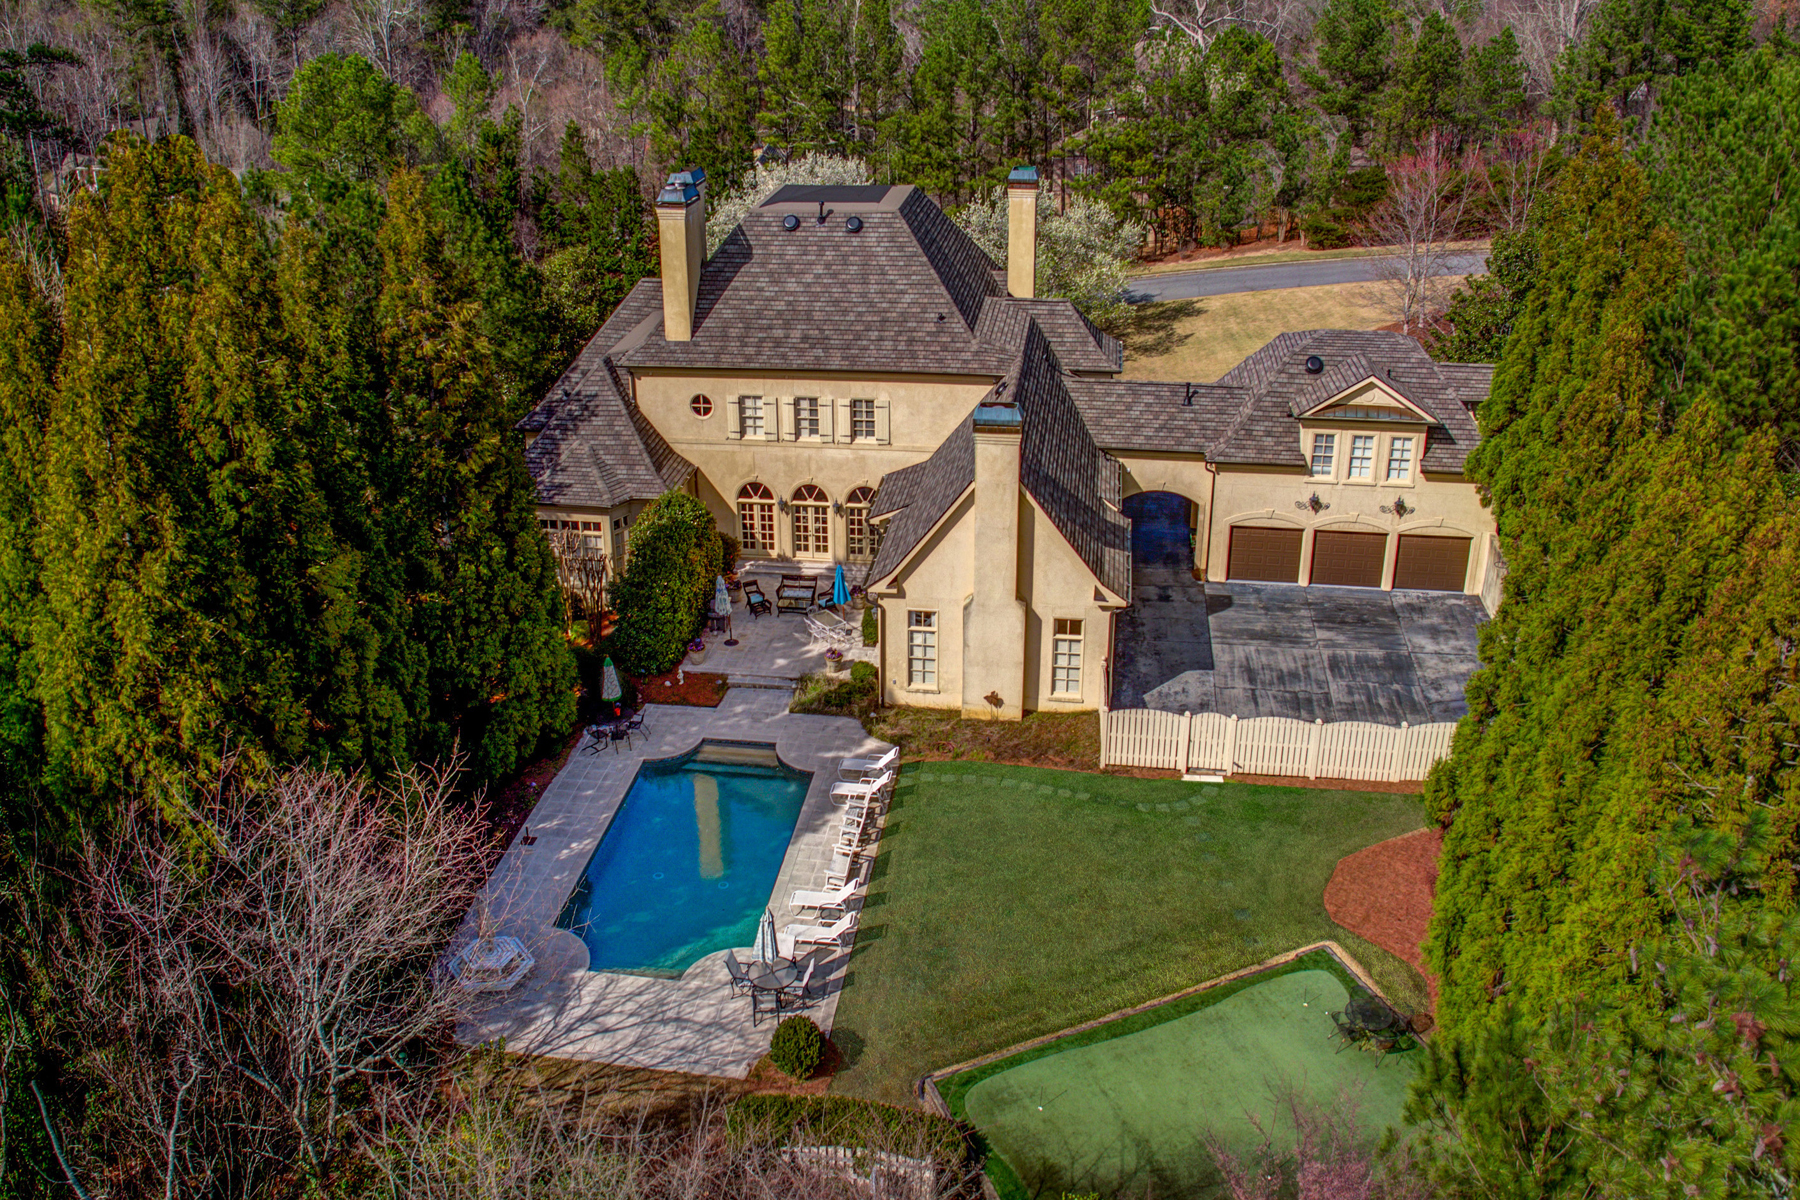 Single Family Home for Sale at Stunning True Neighborhood In Heards Ferry 420 Windship Place Sandy Springs, Georgia 30327 United States